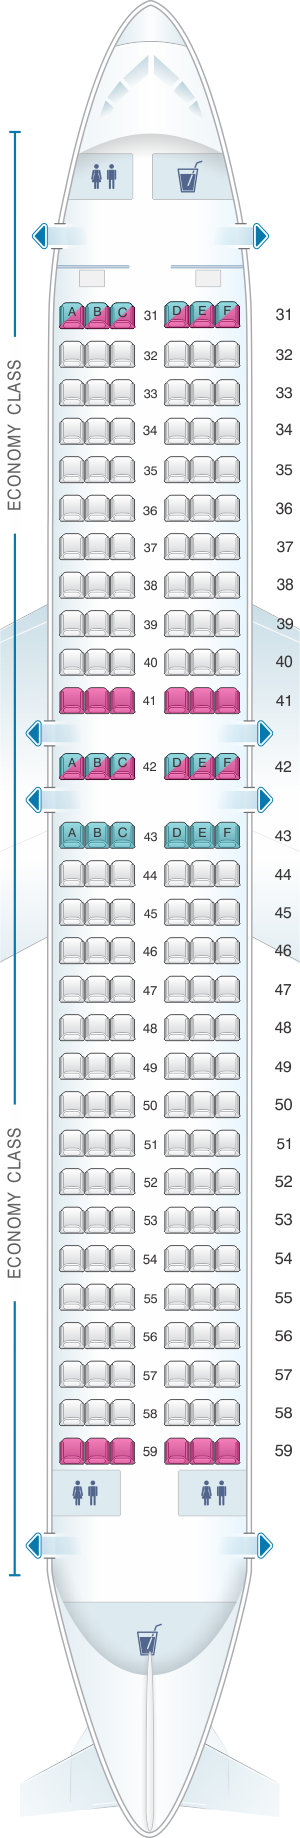 Seat map for Thai Airways International Airbus A320 200 (320)